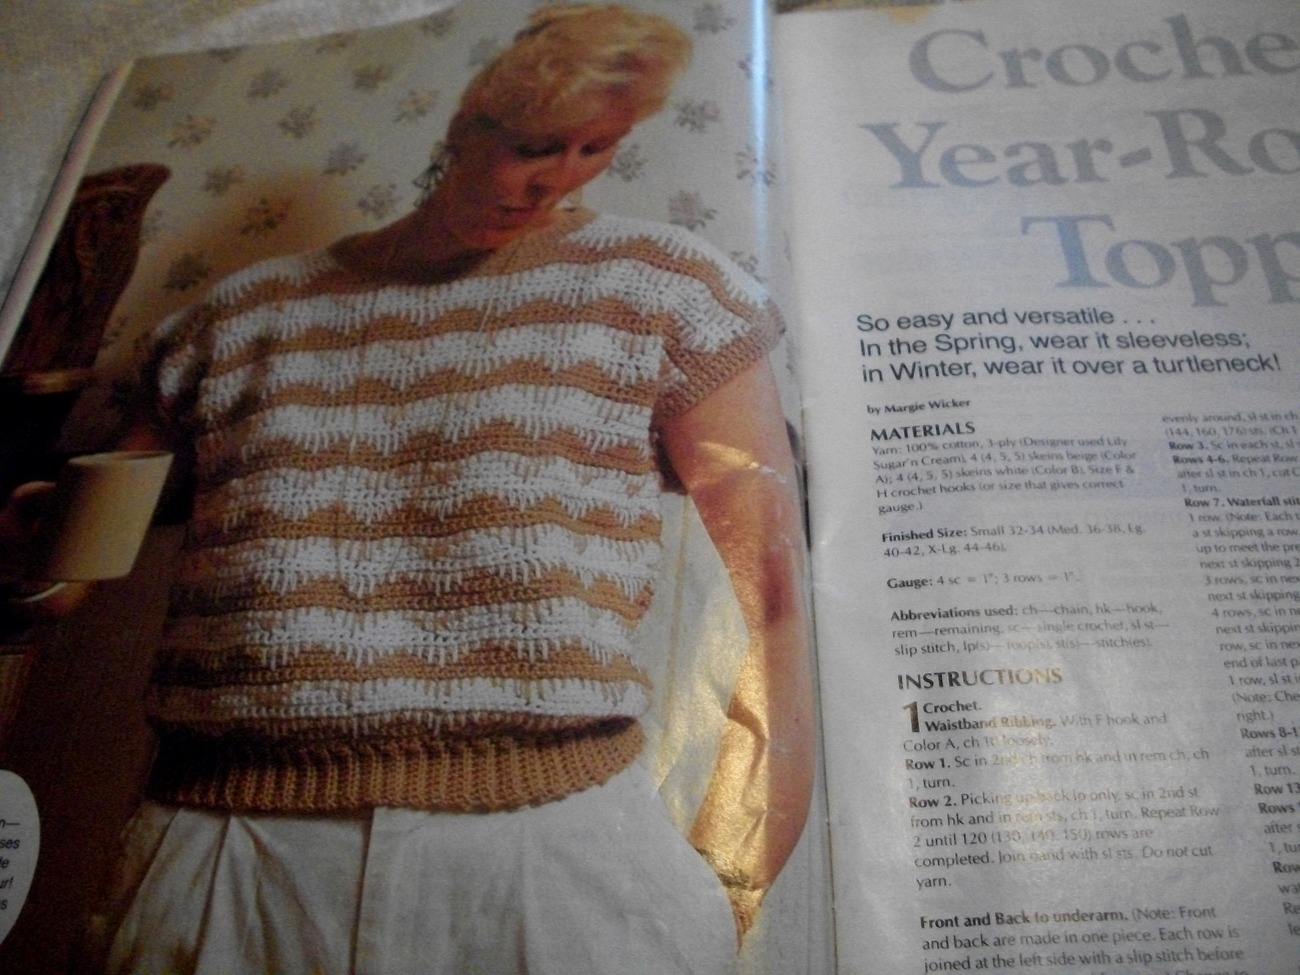 Crafts 'n Things March/April 1989 Magazine